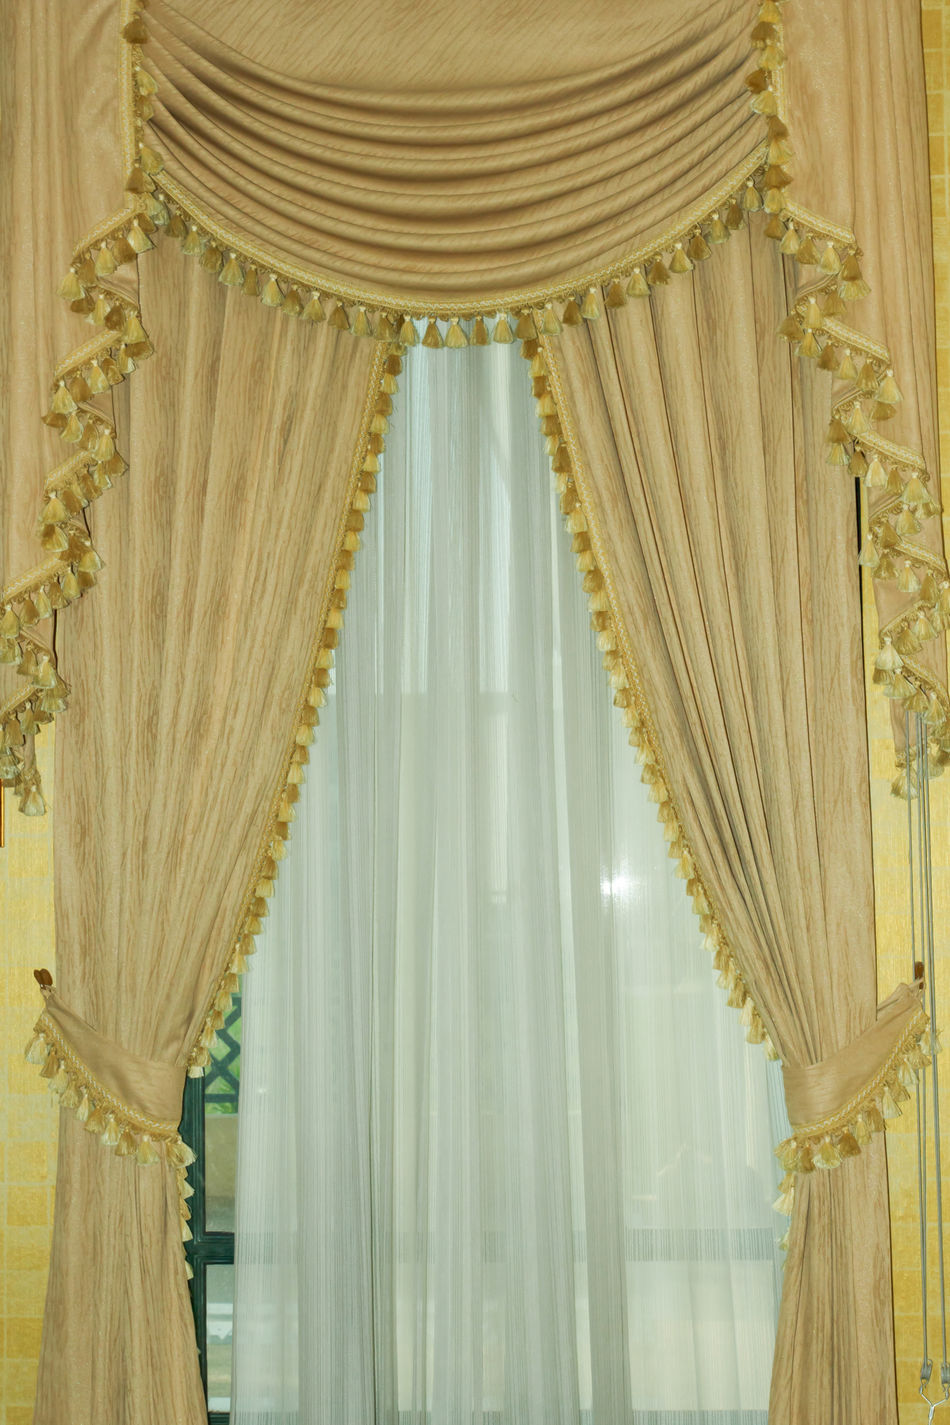 Architecture Architecture Art Art And Craft Art, Drawing, Creativity ArtWork Curtain Curtain Pattern Curtain Wall Curtain Walls Curtained Curtains Curtains Can Be Beautiful Curtainsclosed Day History Home House Indoors  Interior Interior Design Interior Style Interior Views No People Travel Destinations